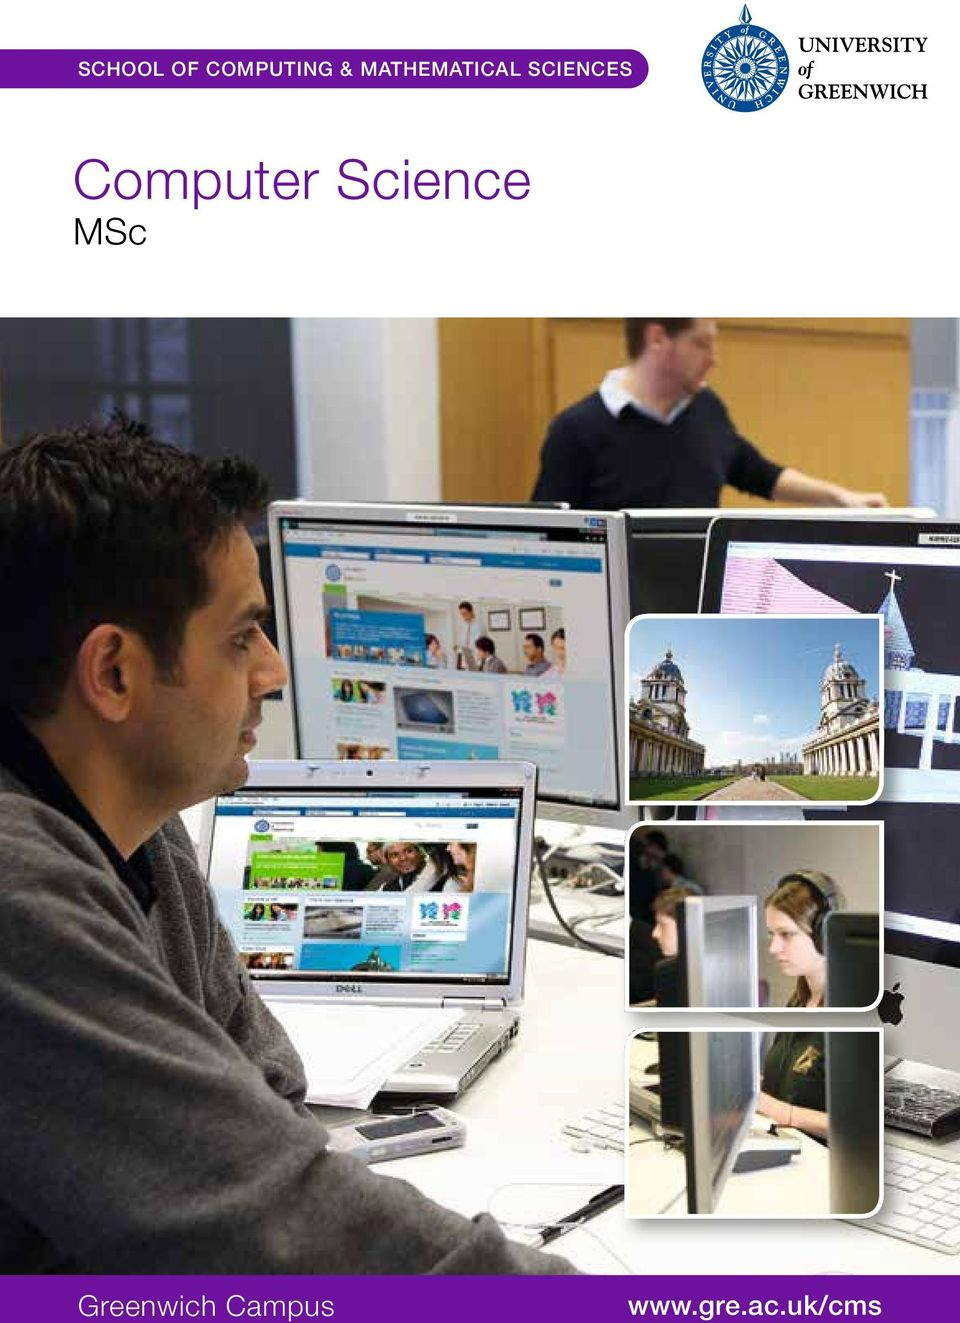 Computer Science MSc